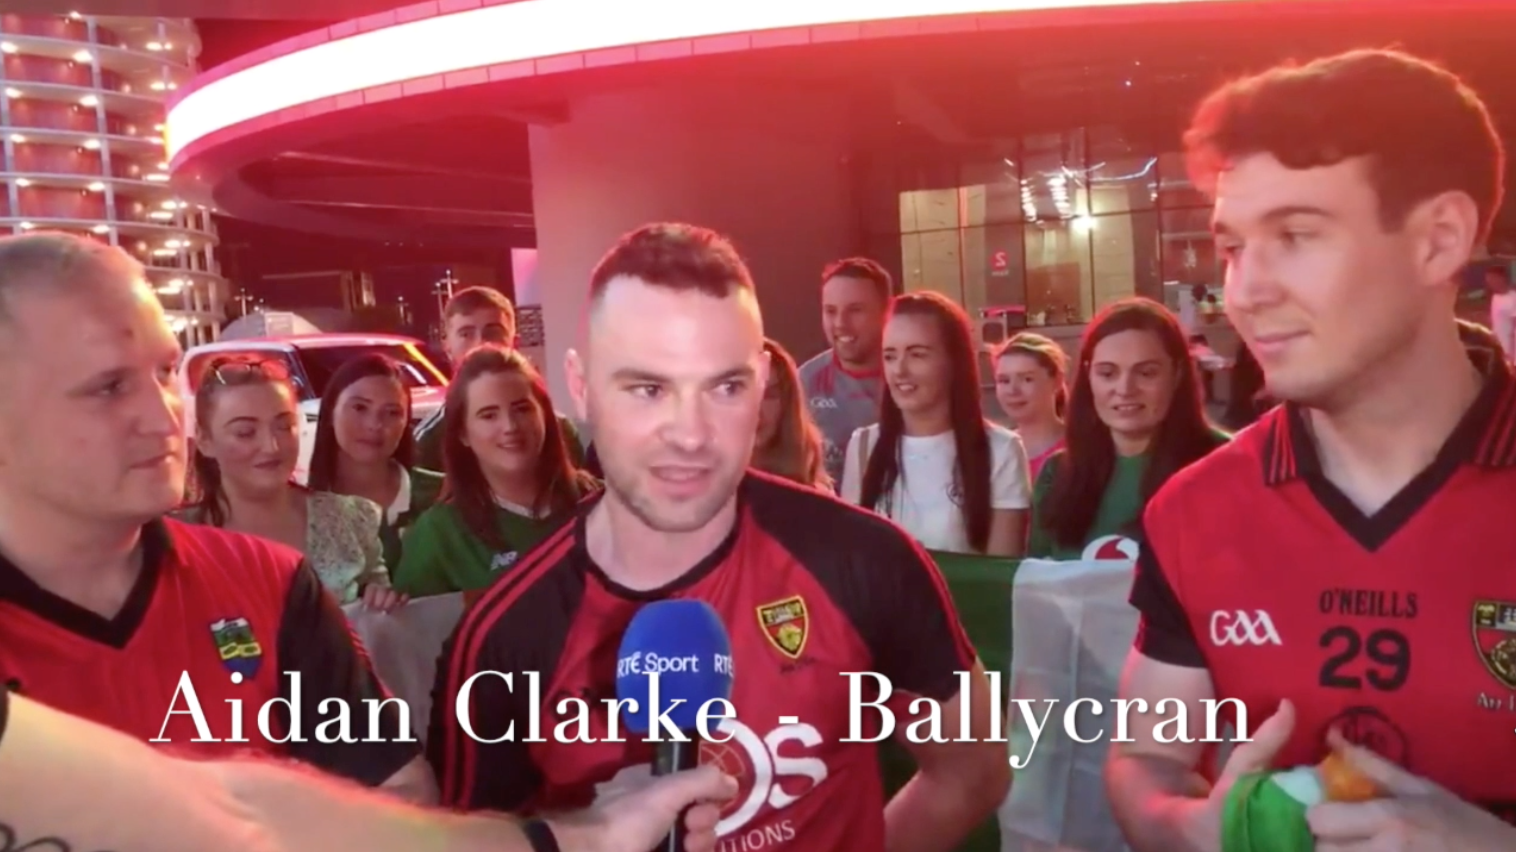 Ballycran's Aidan Clarke Shares His Thoughts On Living Abroad